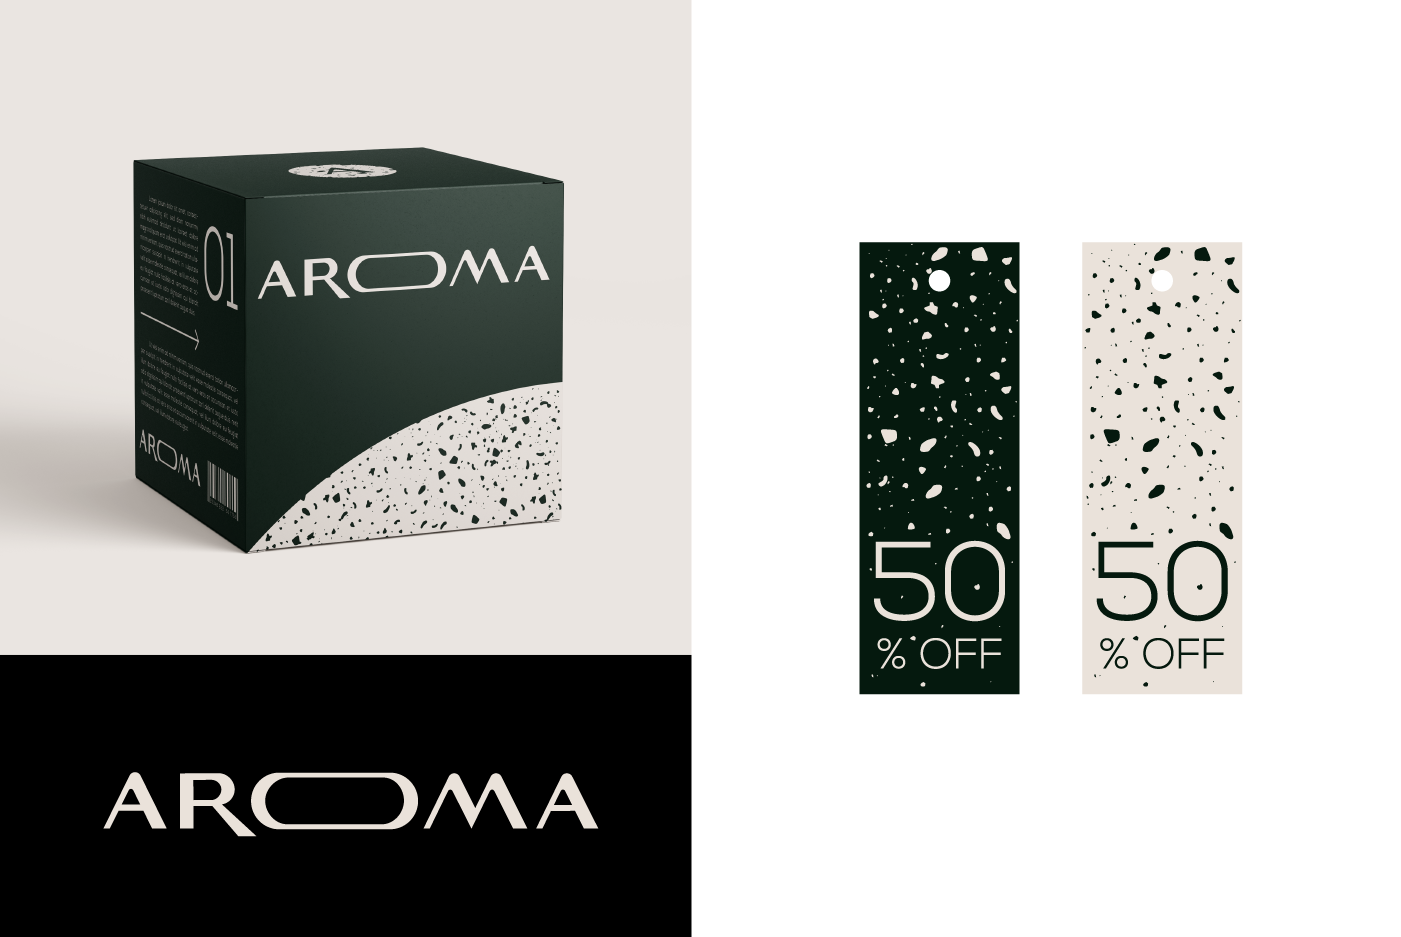 AROMA packaging and tags